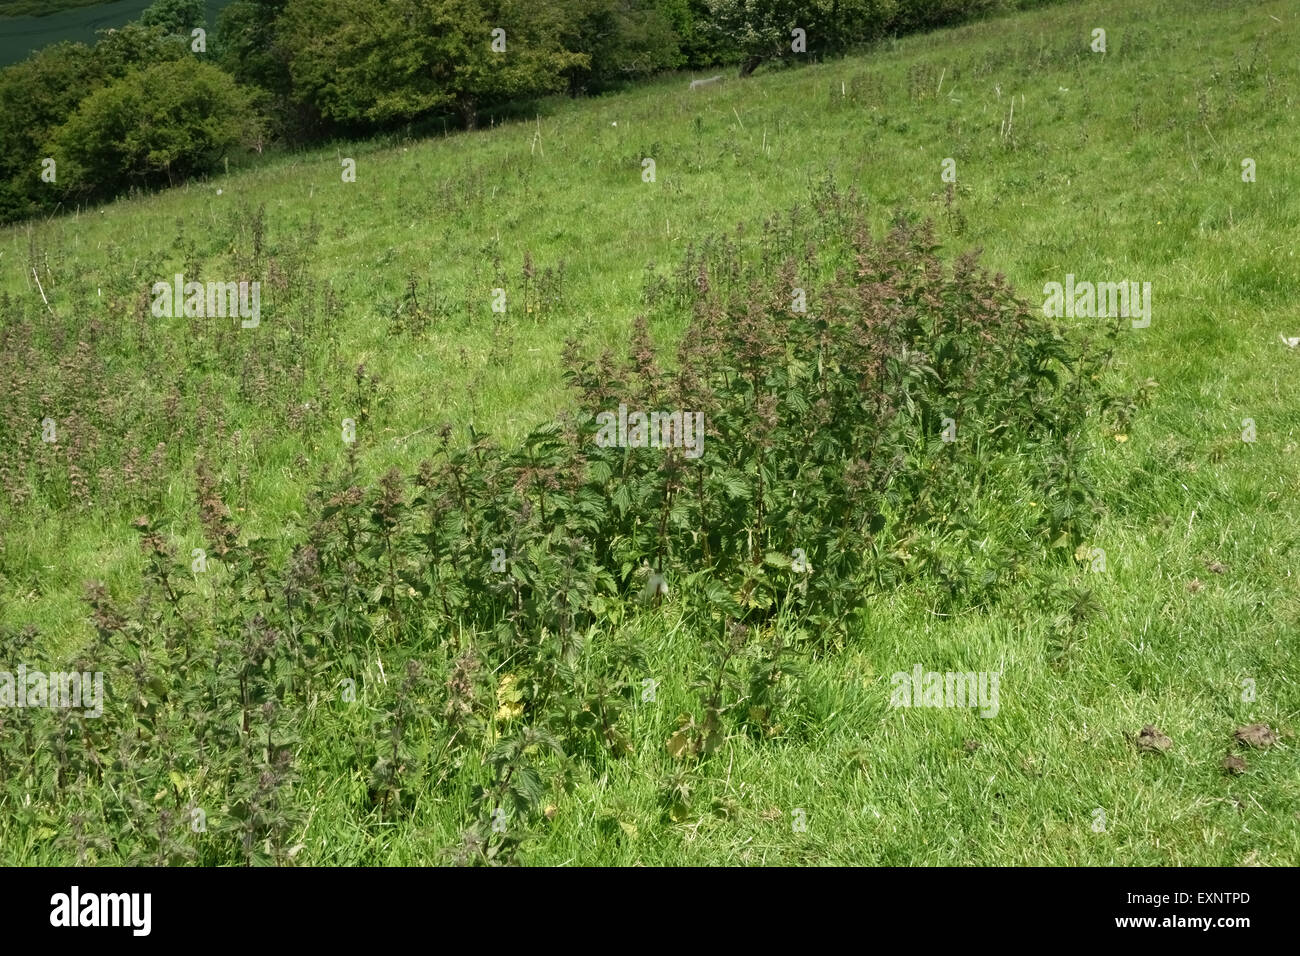 Stinging nettles, Urtica dioica, flowering in downland grass pasture in summer, Berkshire, June - Stock Image